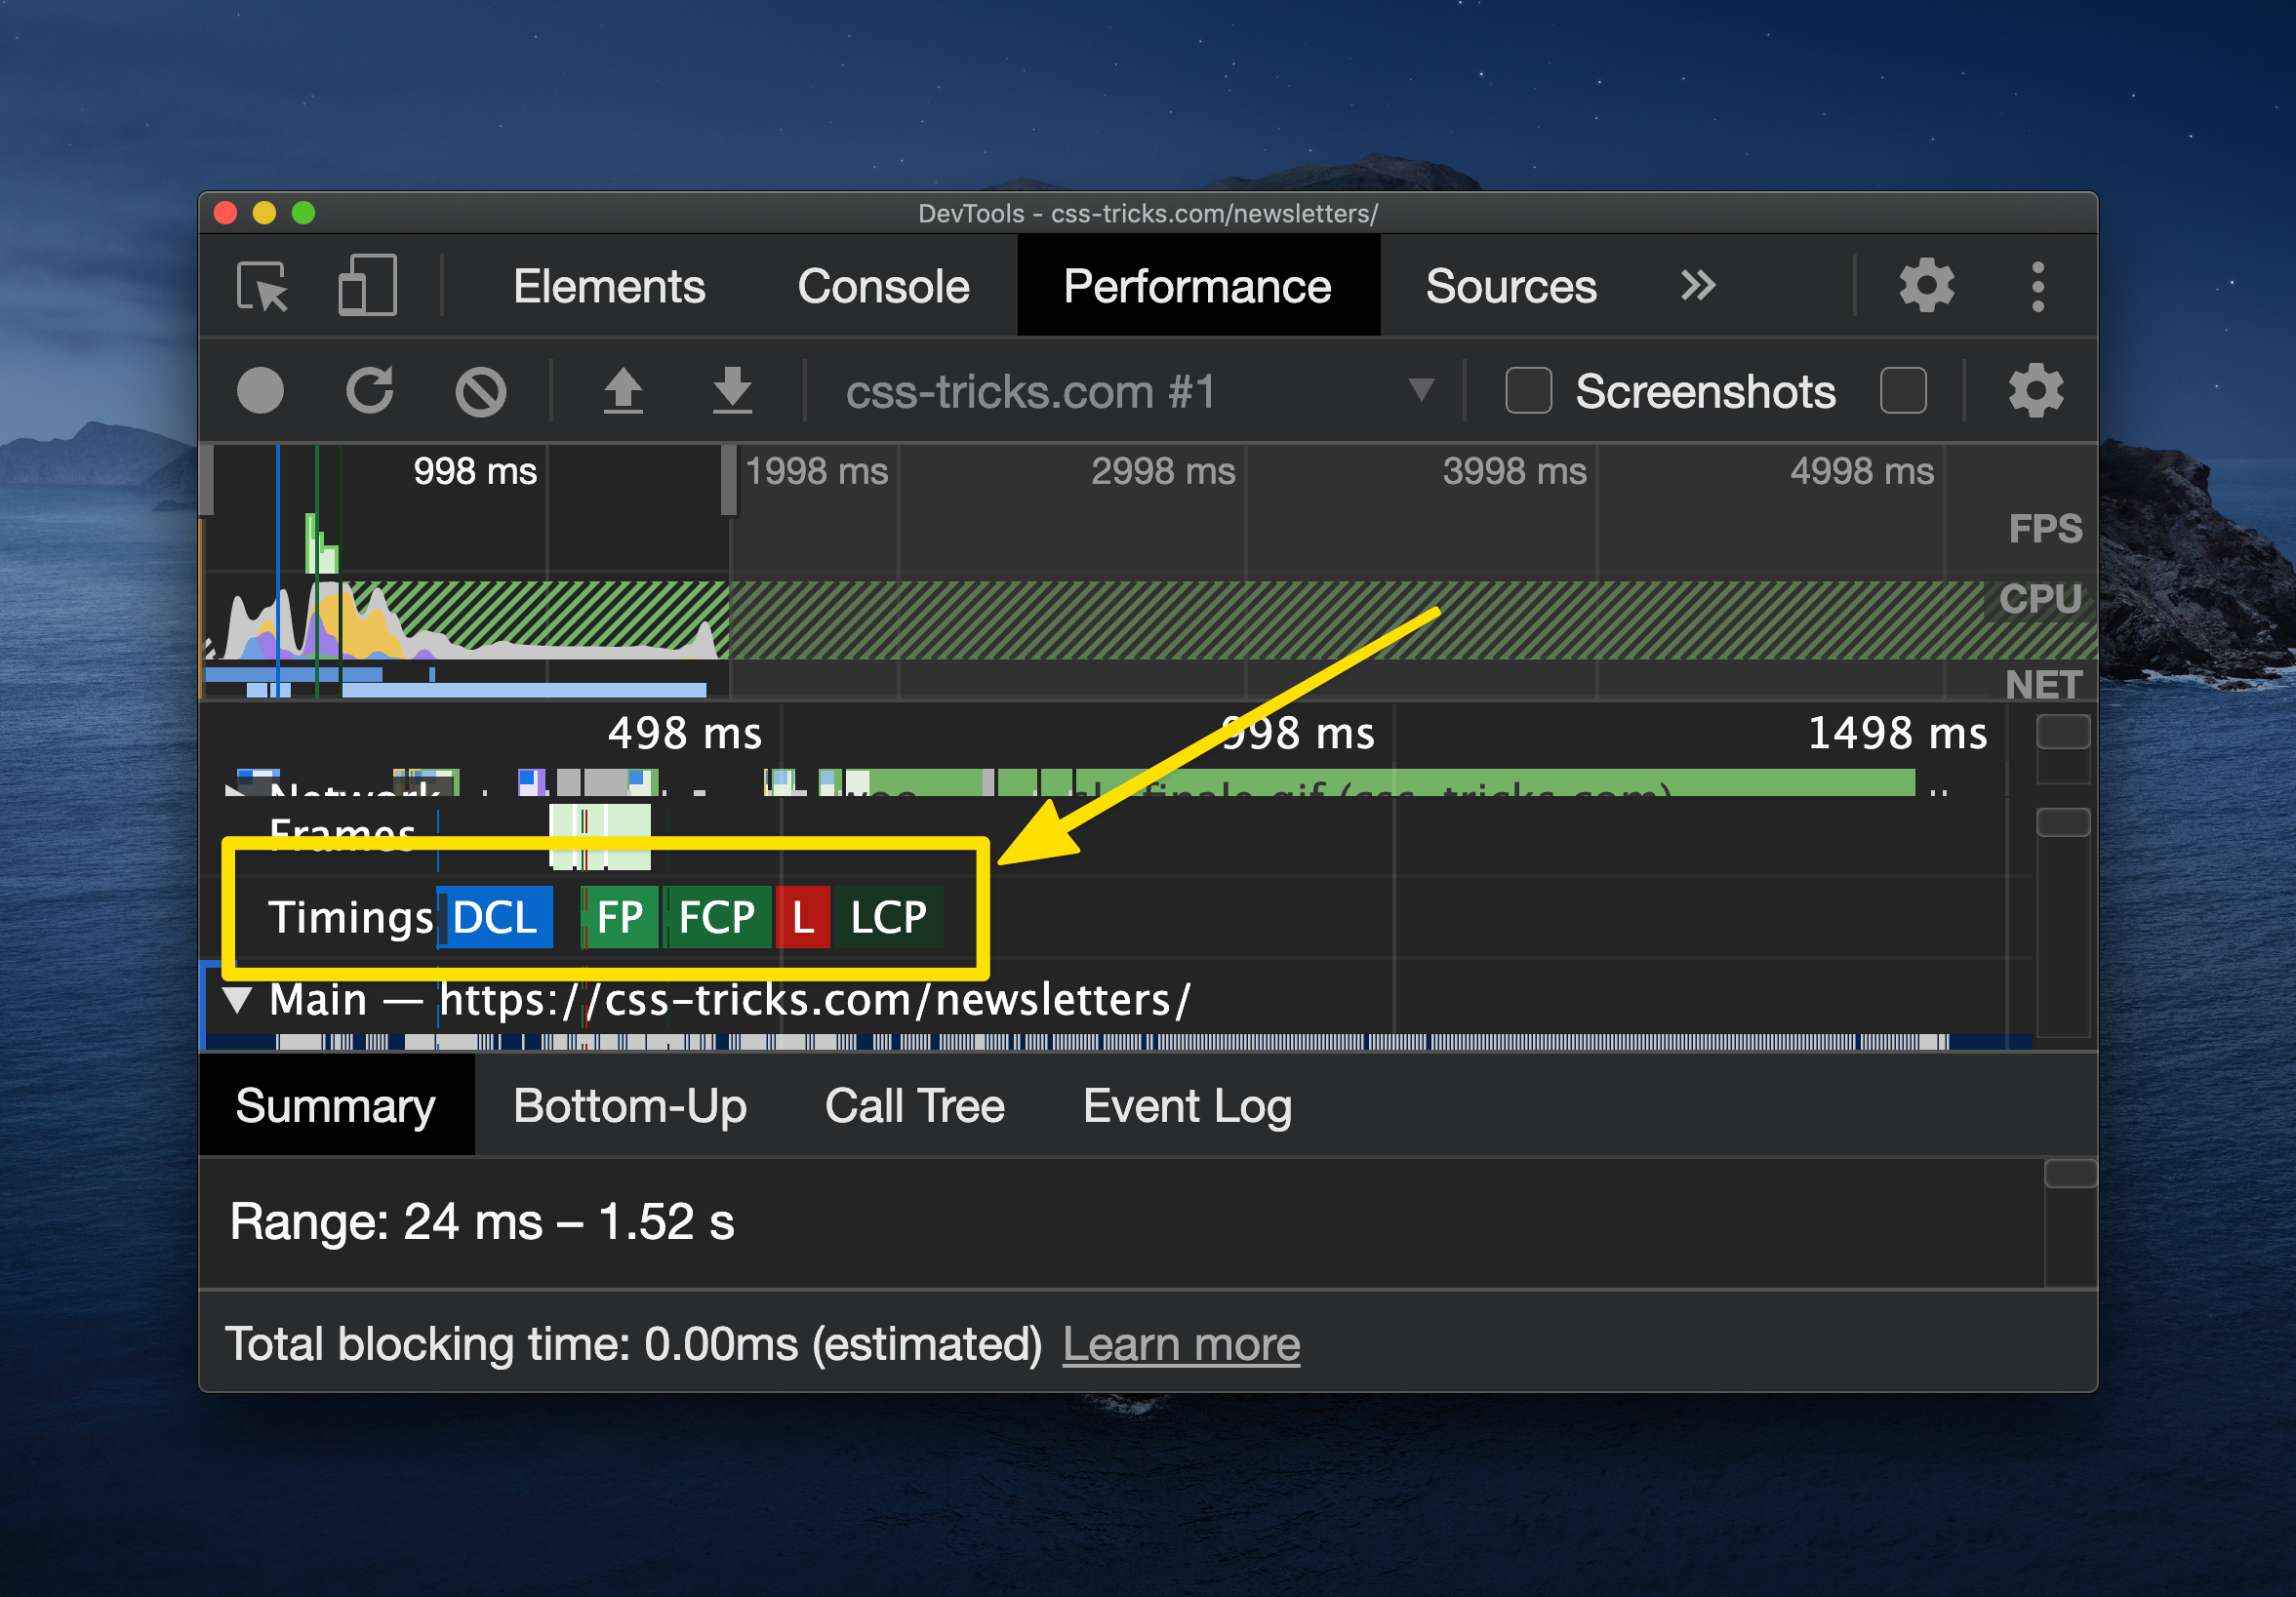 Screenshot of DevTools with the Performance panel open. A chart showing the timeline of page rendering is above a row of Timings, including DCL, FP, FCP, L, and LCP. Below that is a summary that provides a time range for the selected timing.